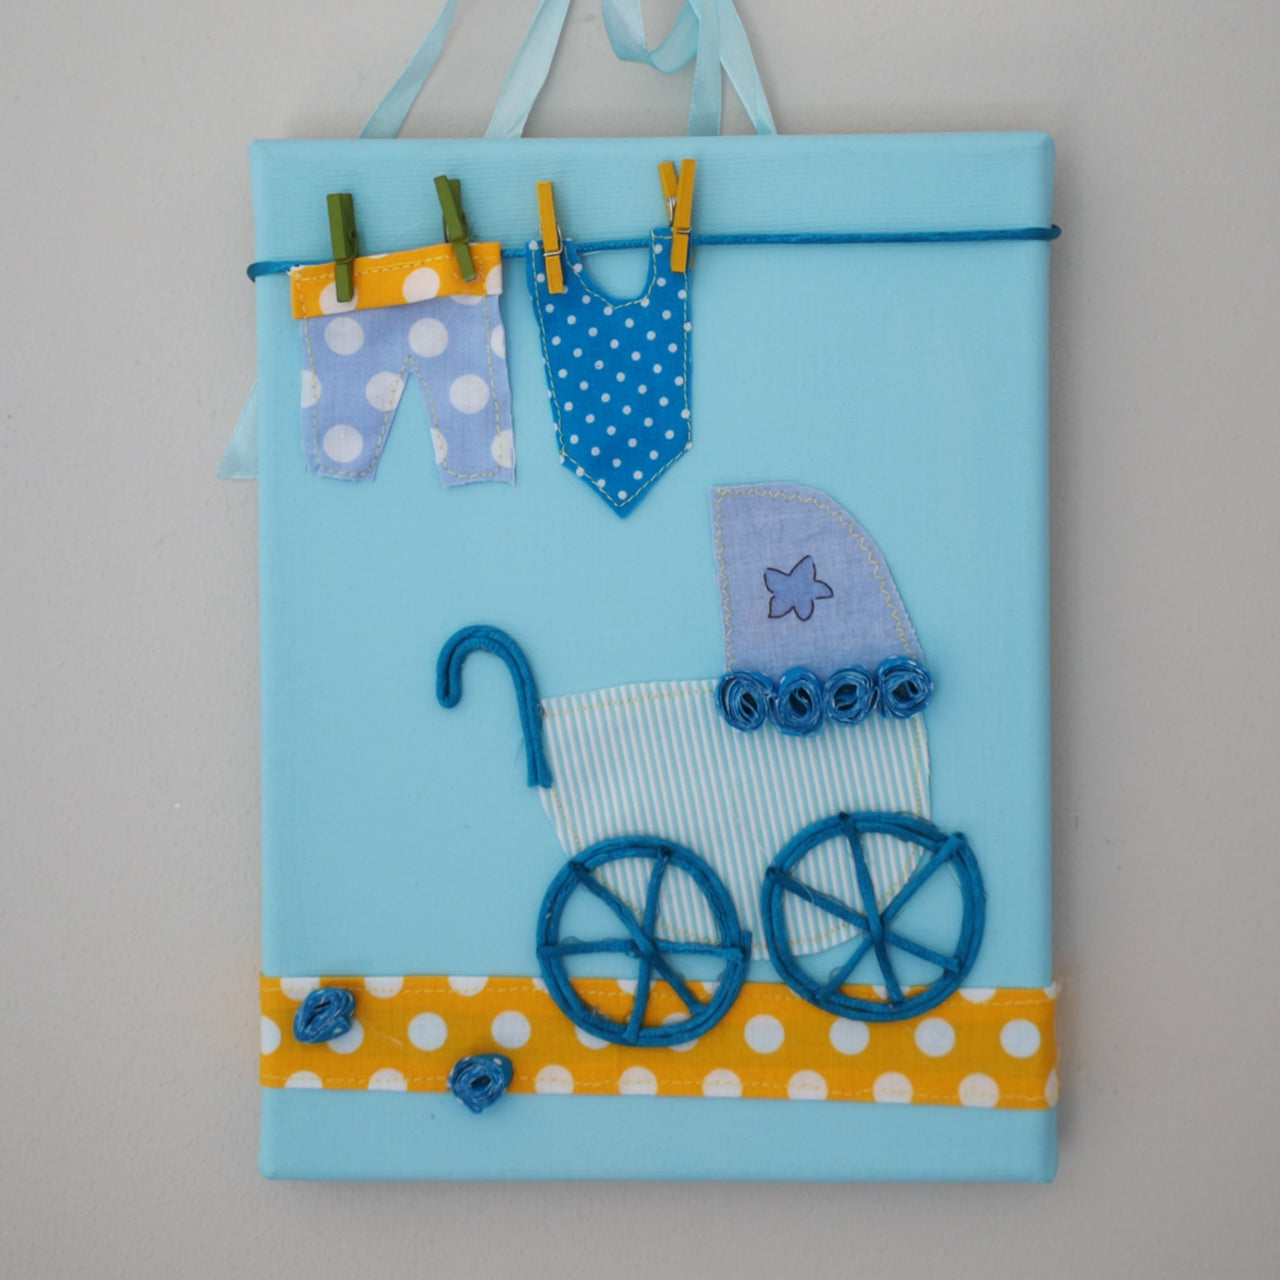 A beautiful Italian hand-crafted baby picture complete with an old style pram and washing line. It is the ultimate gift for a new baby or for their christening or baby-naming ceremony. Here in blue.